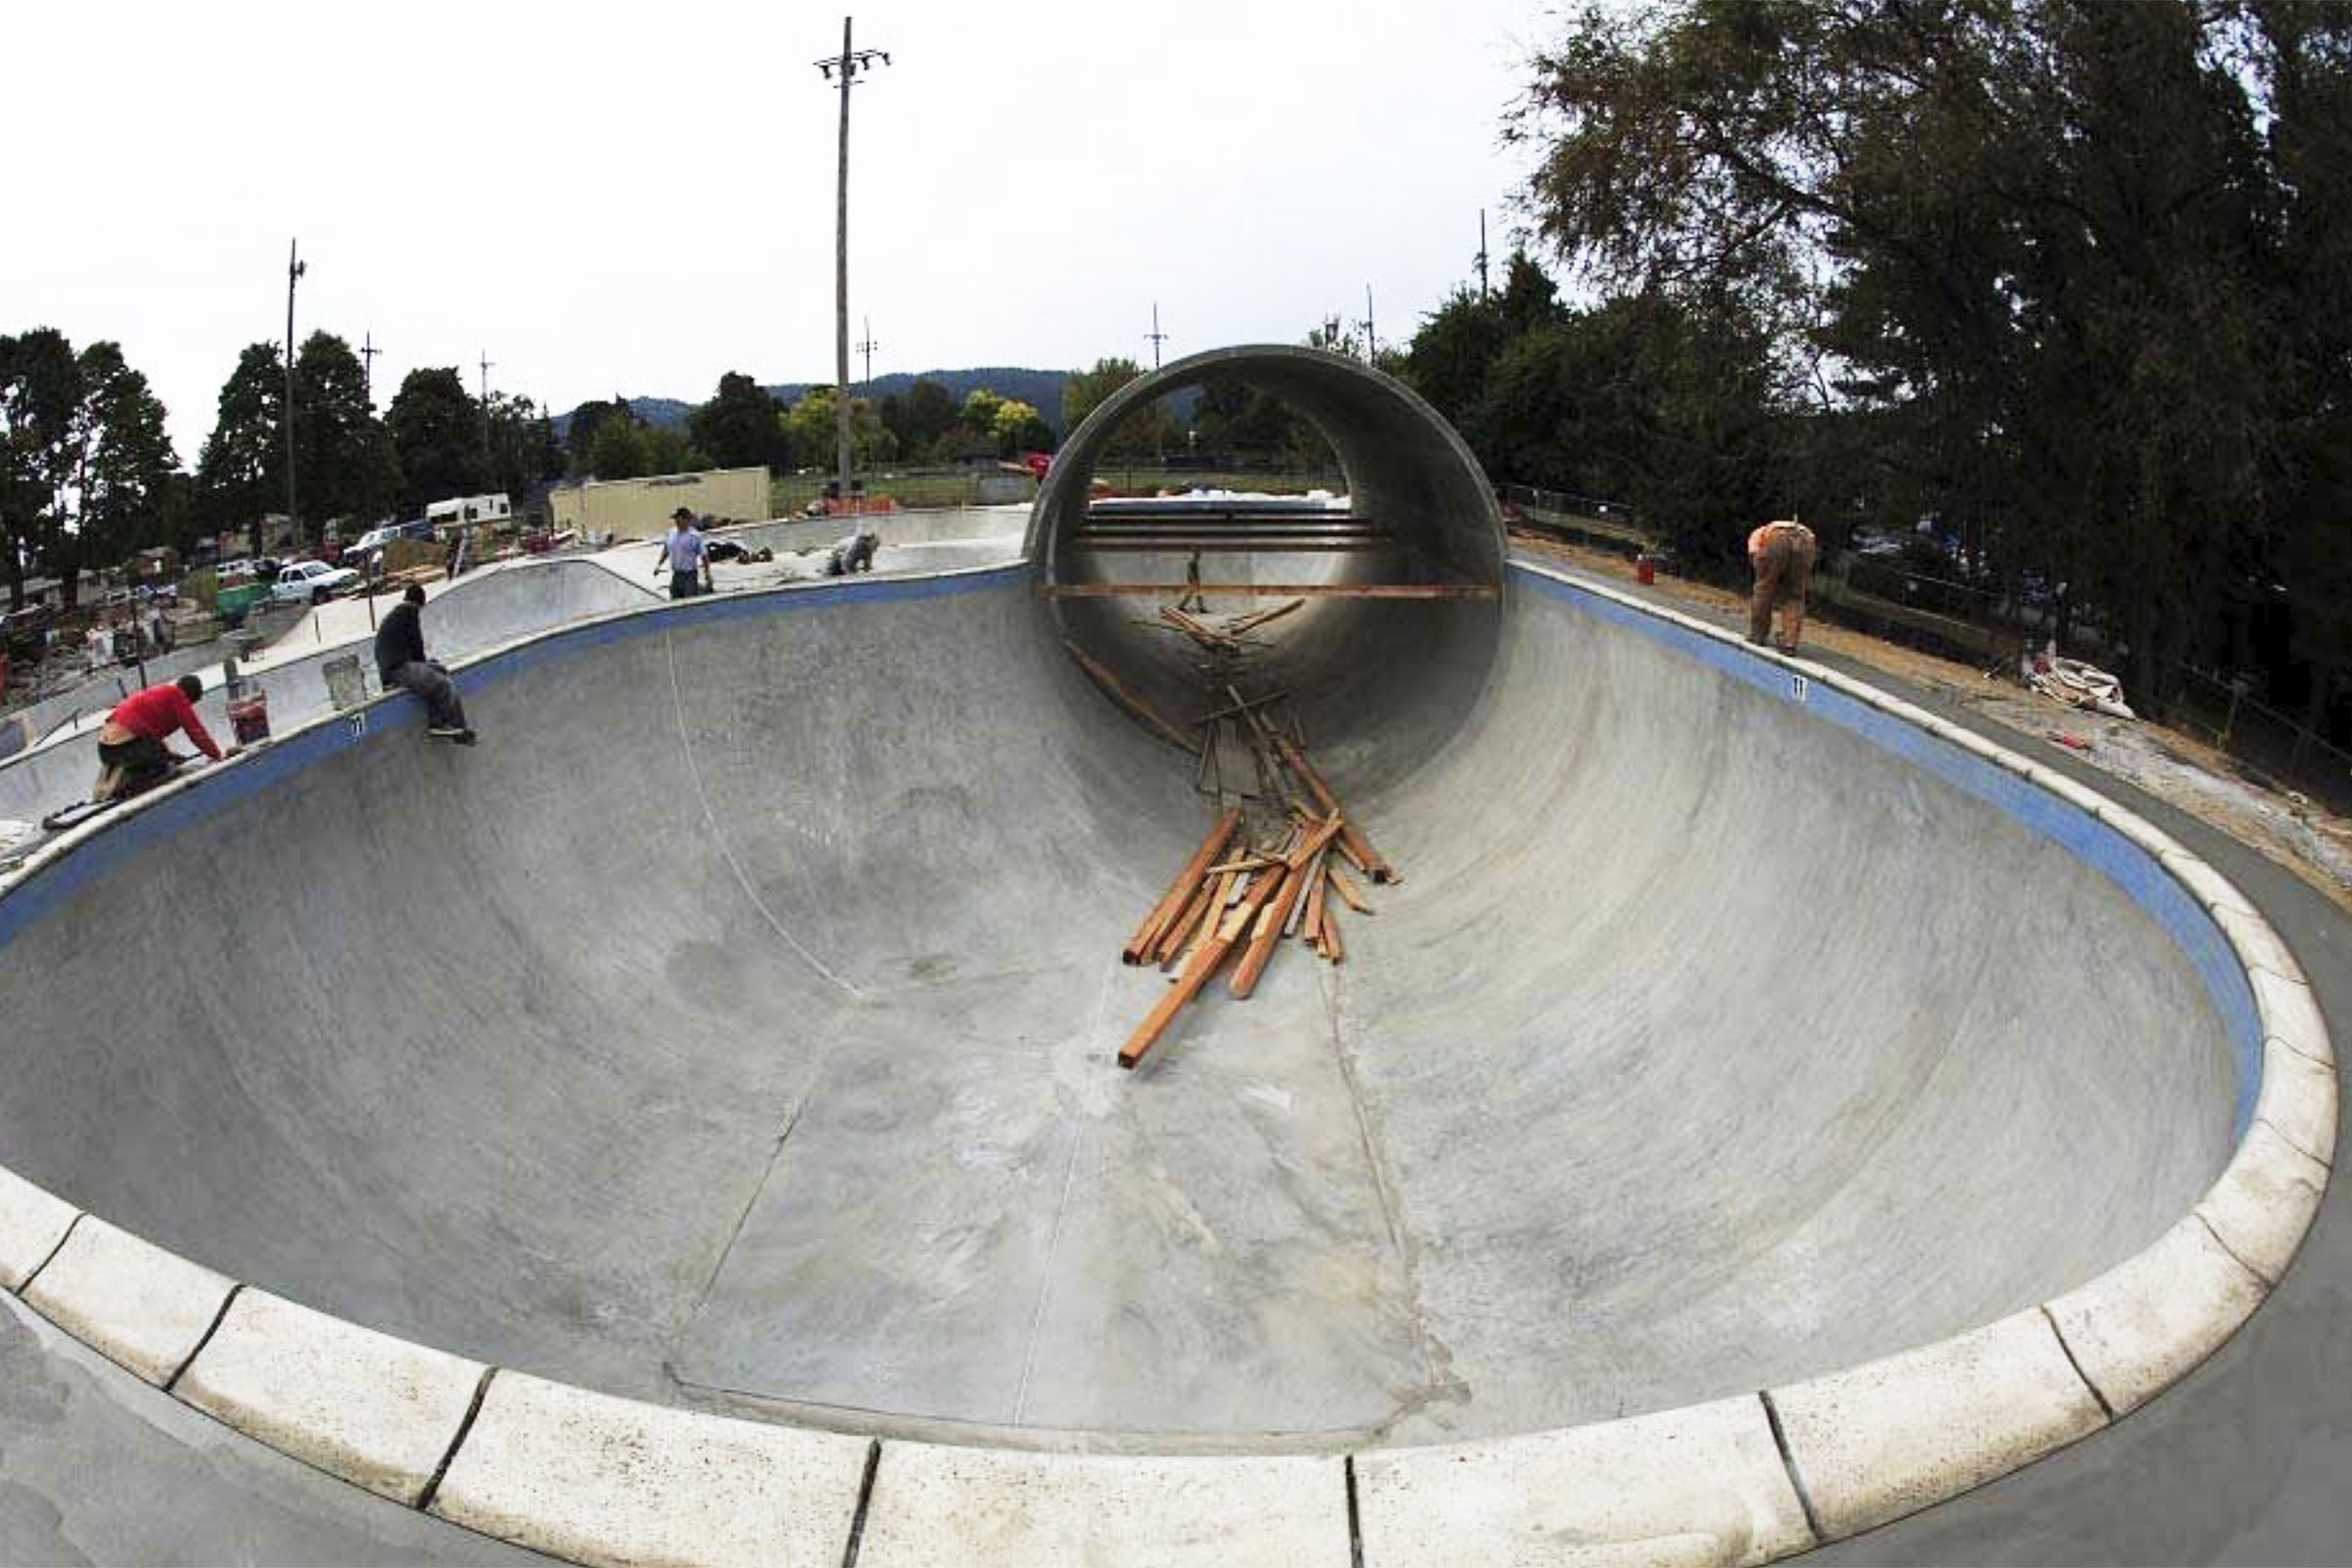 Pier Park's iconic pipe and 11 1/2 deep bowl nears completion and opening day.